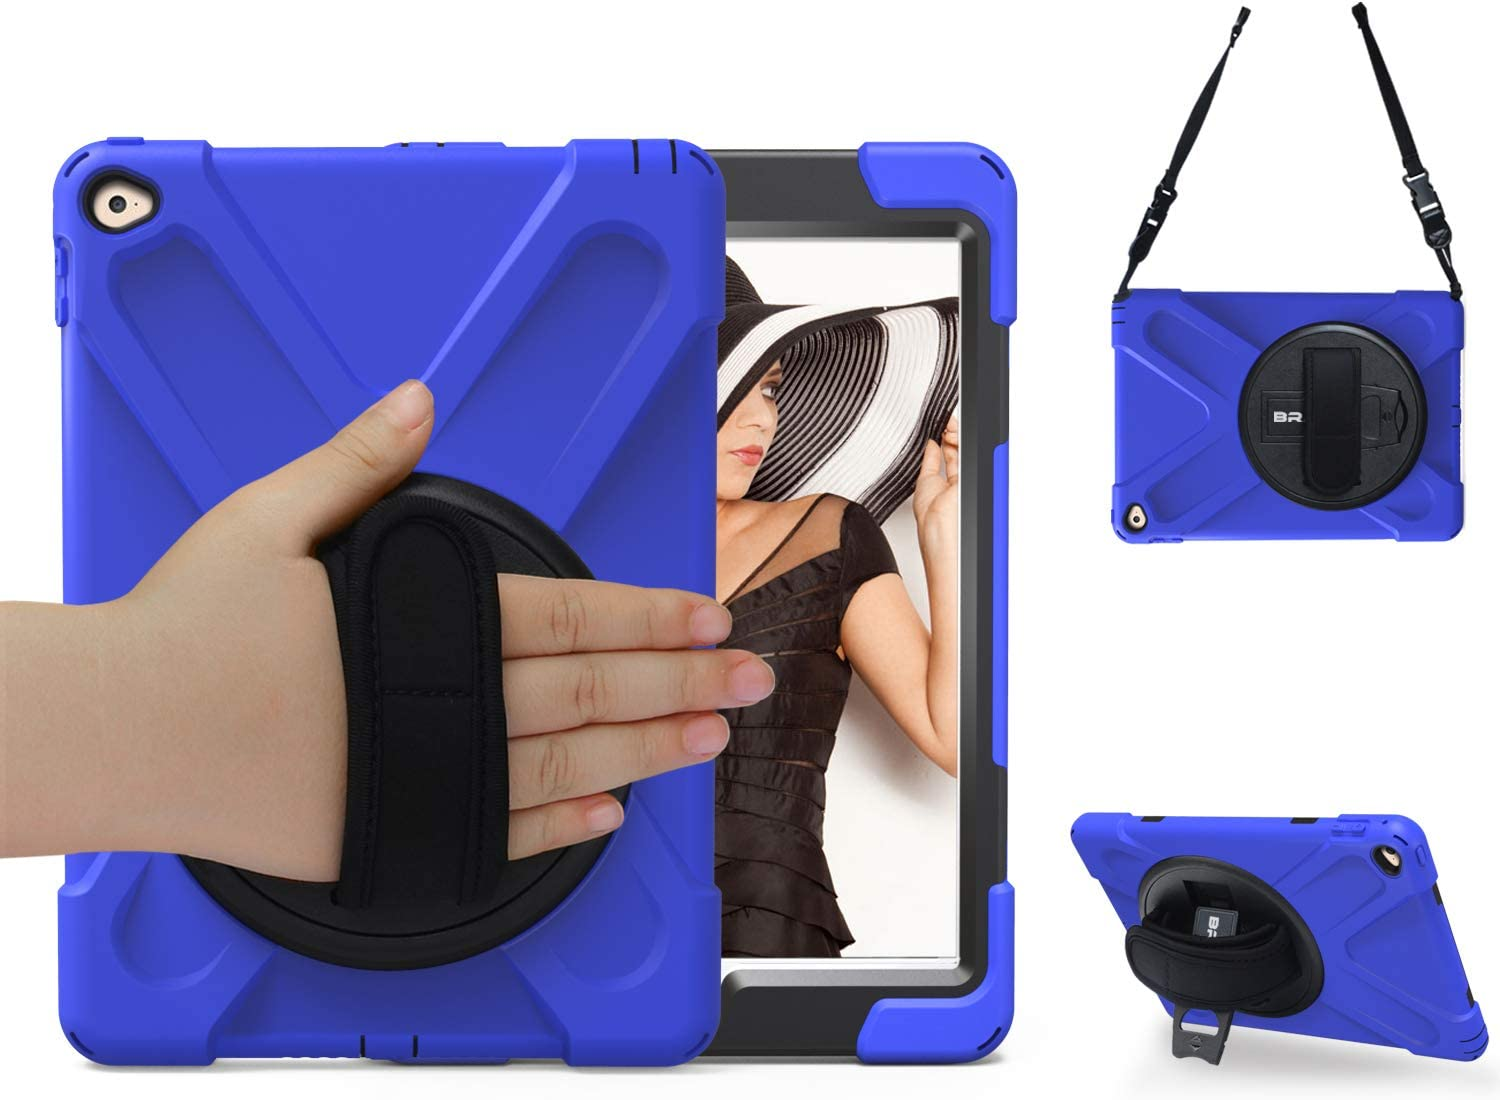 BRAECN case for iPad Air 2 9.7 inch,Three Layer Drop Protection Rugged Protective Heavy Duty IPad Case with 360 Degree Swivel Stand/Hand Strap and Shoulder Strap for iPad Air 2 Kids Case (Blue)